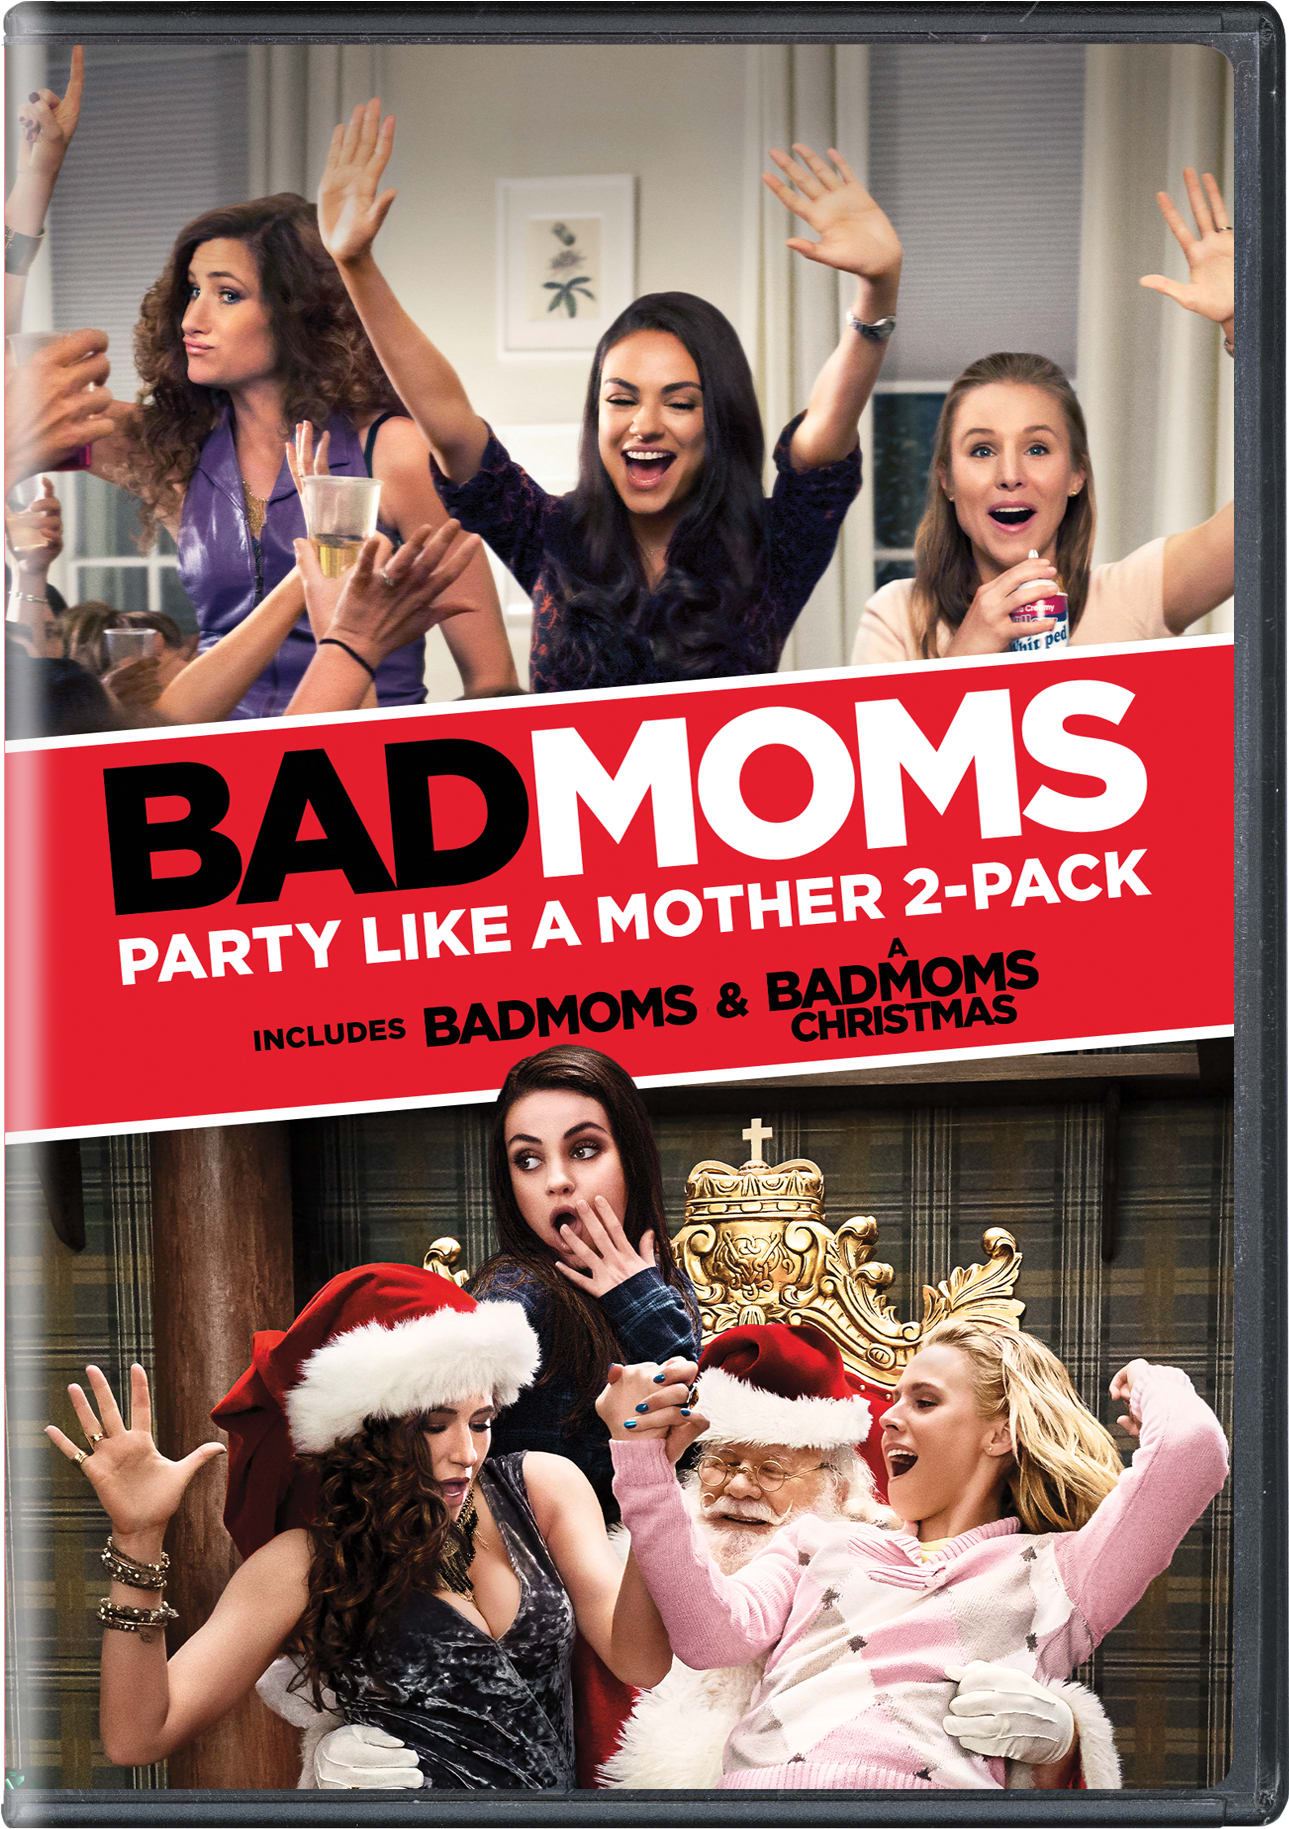 Bad Moms: Party Like a Mother 2-Pack [DVD]